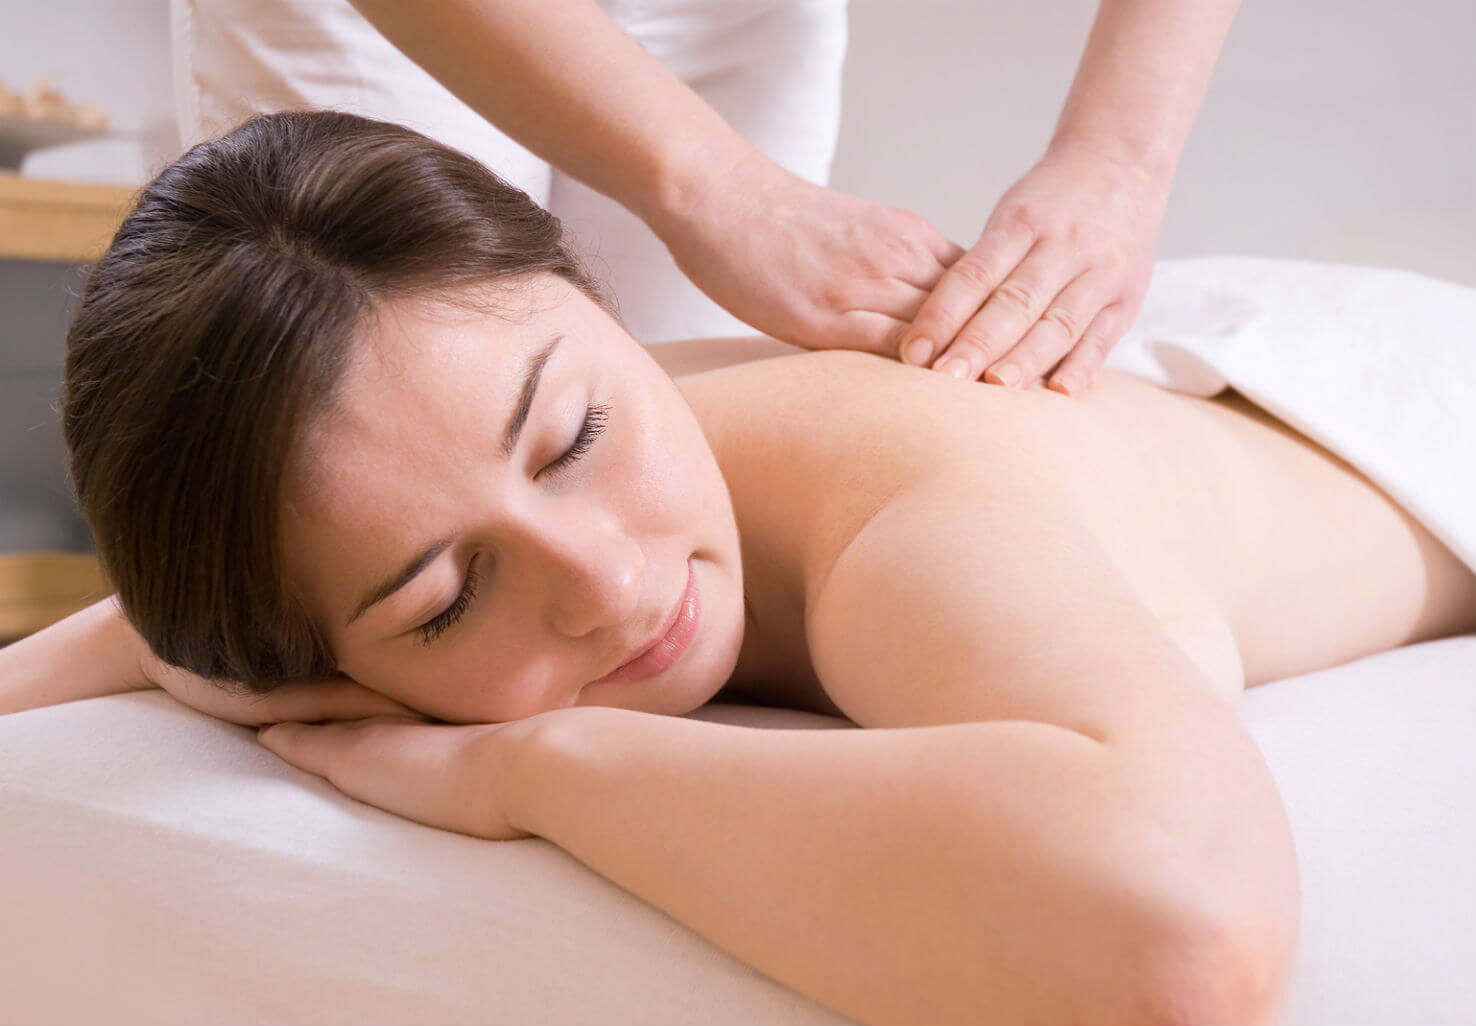 Woman receives therapy massage